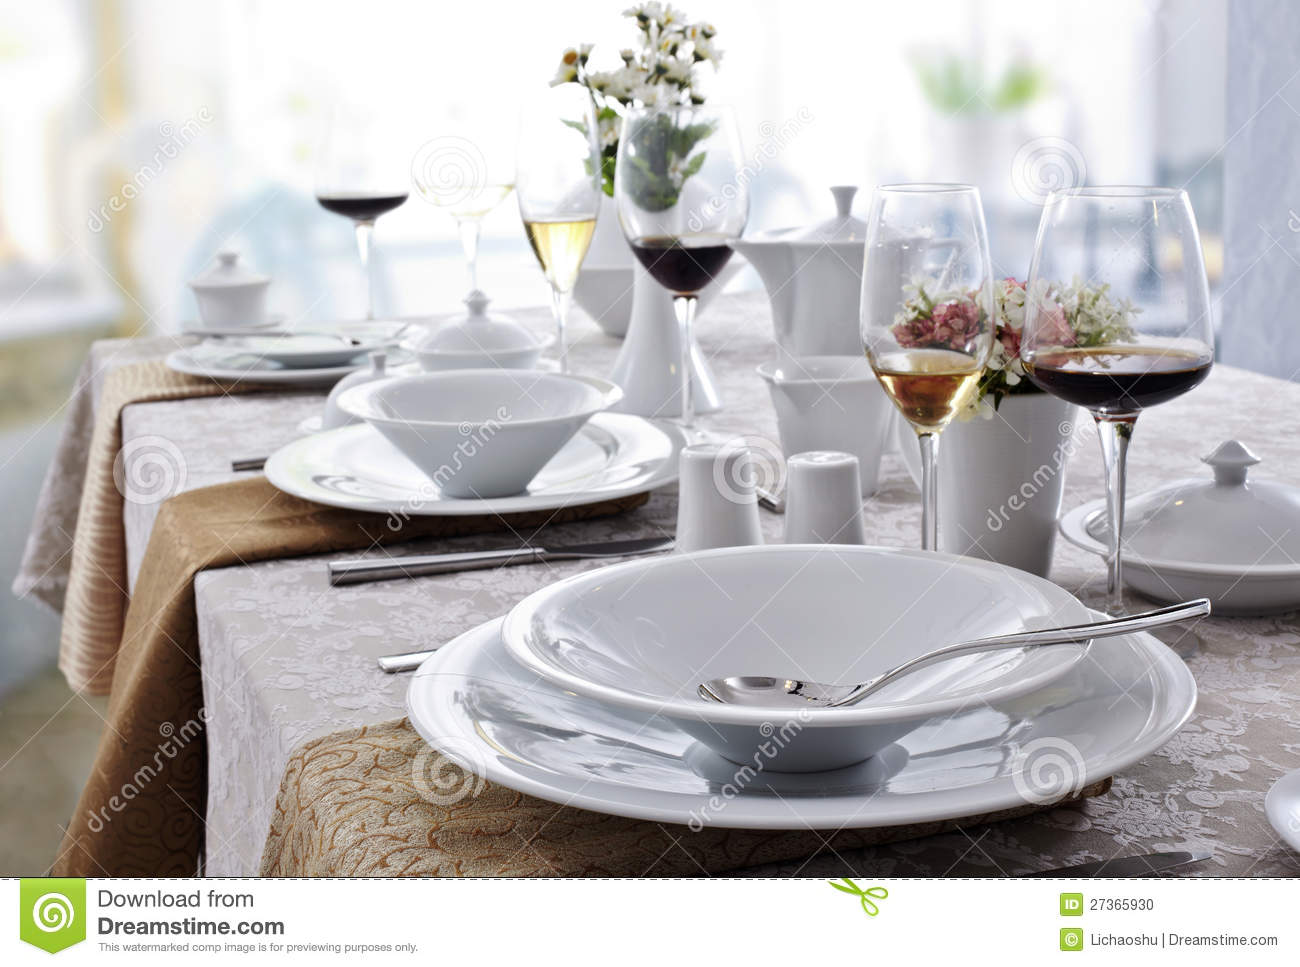 Ceramic Tableware Stock Photo Image 27365930 : ceramic tableware 27365930 from www.dreamstime.com size 1300 x 967 jpeg 123kB